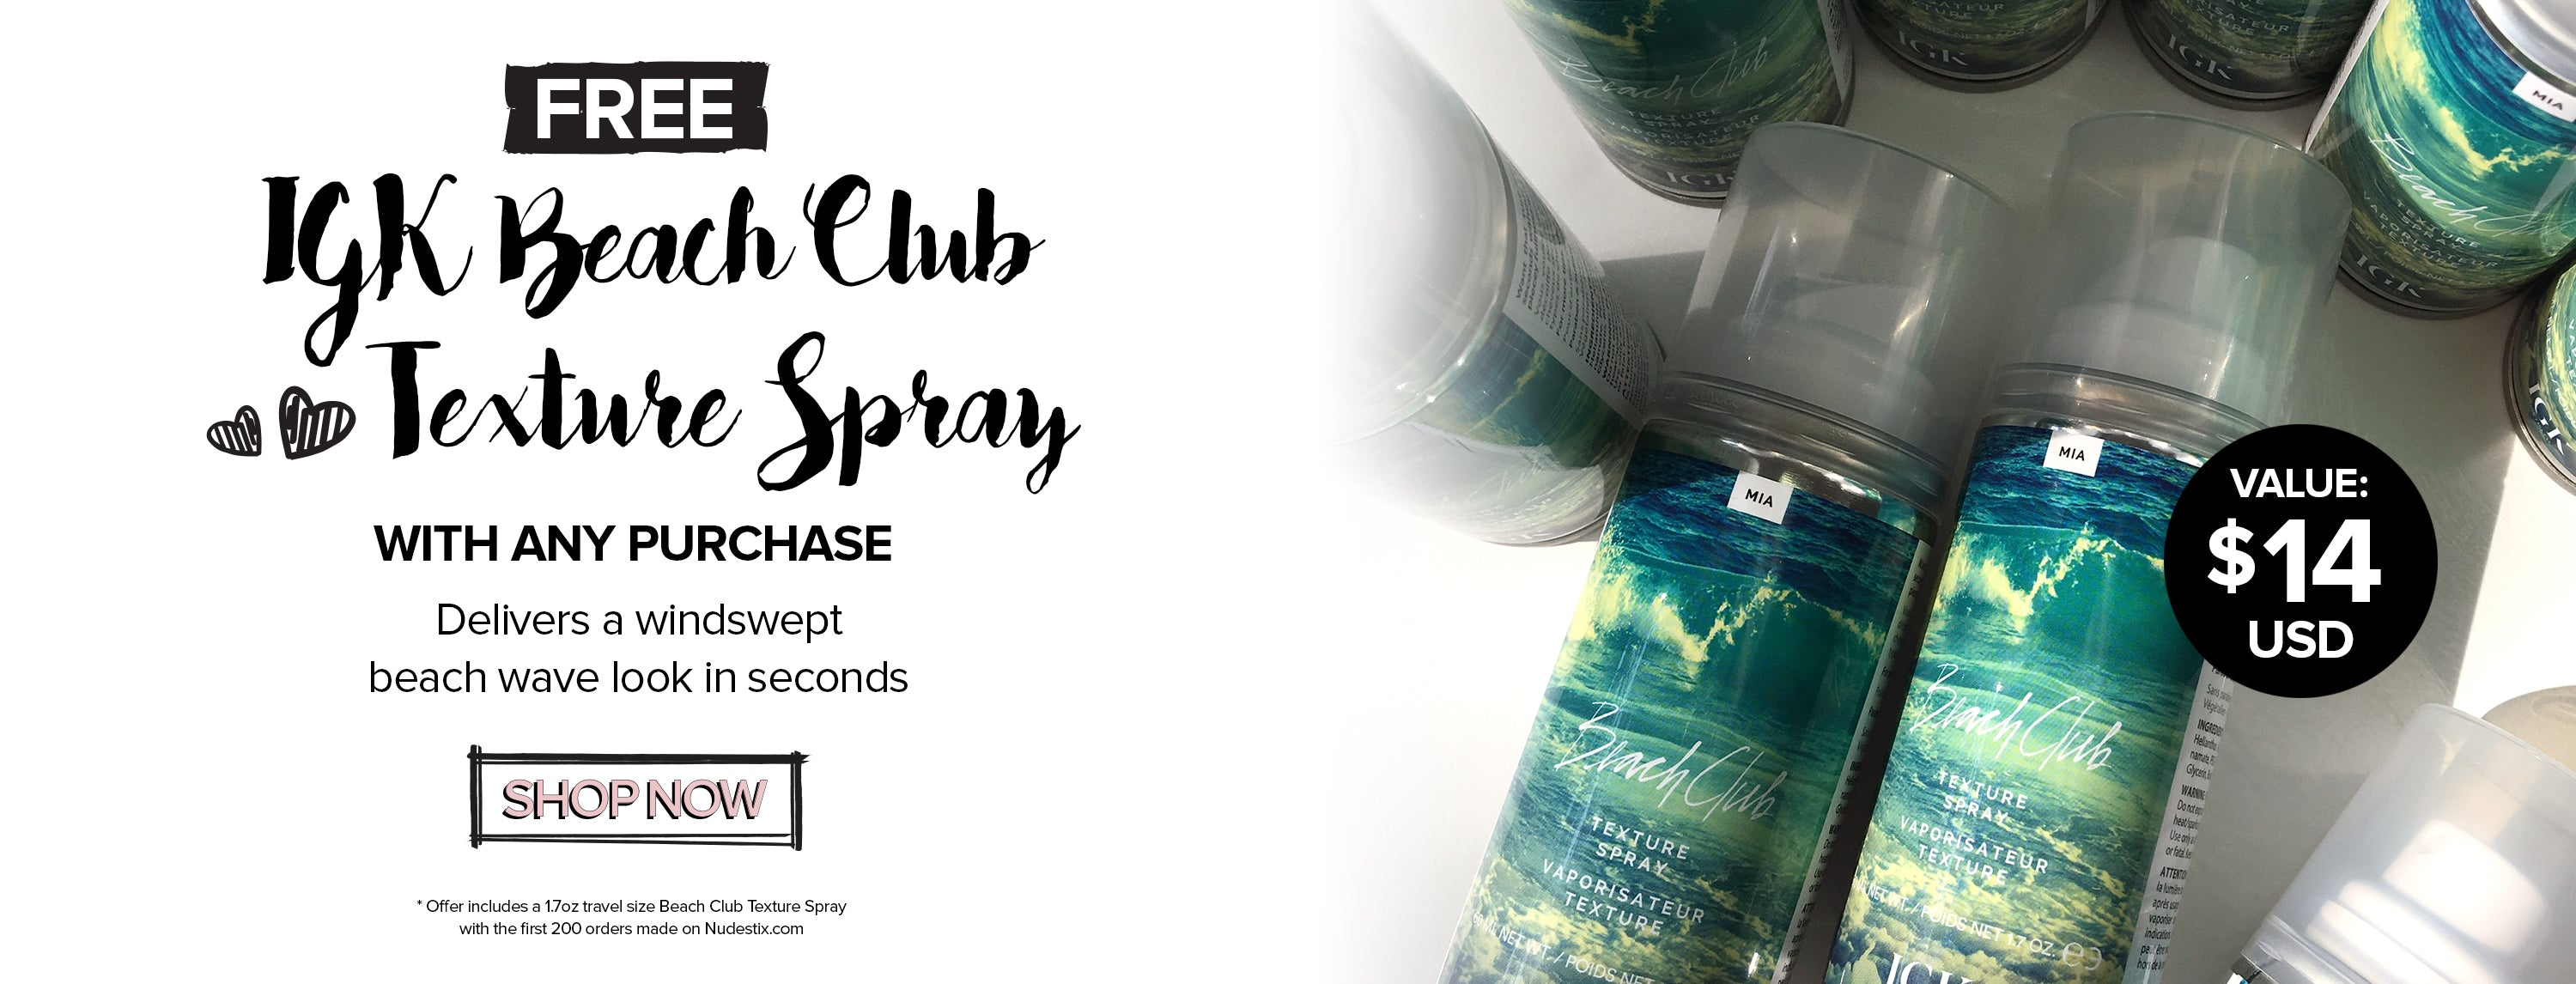 FREE: Mini IGK Beach Club Texture Spray